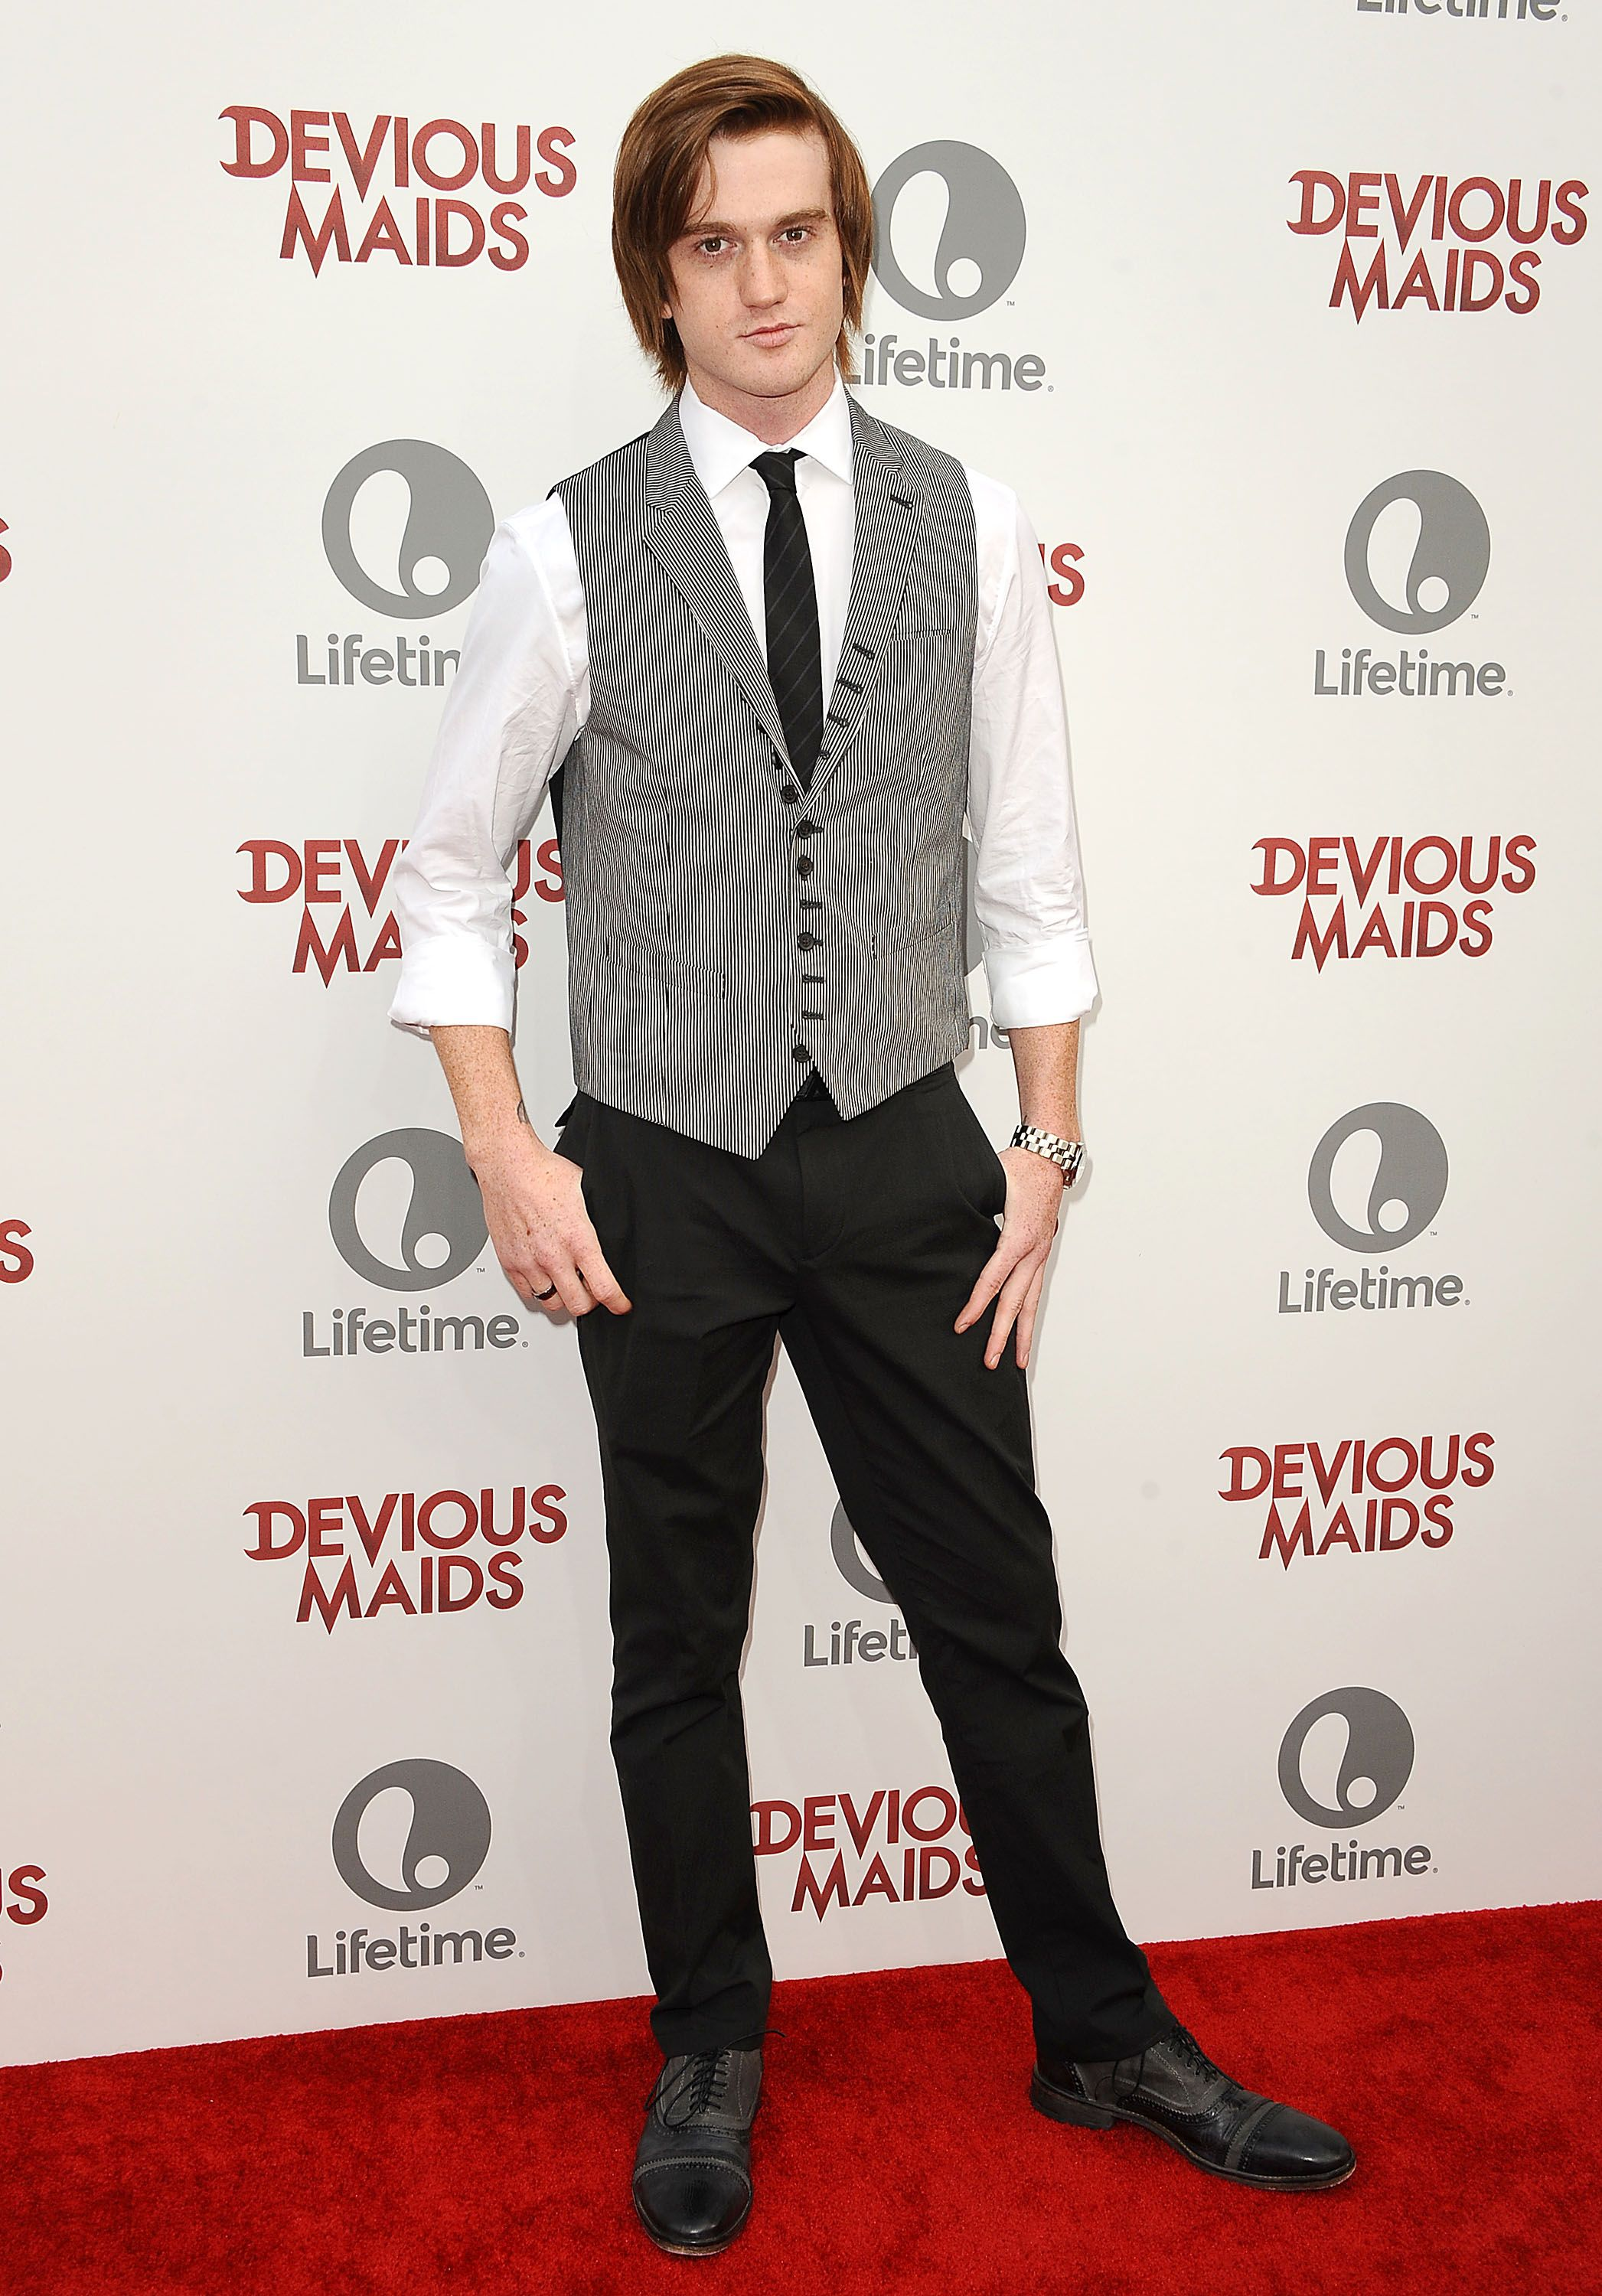 """Eddie Hassell atthe premiere of """"Devious Maids"""" at the Bel-Air Bay Club on June 17, 2013, in Beverly Hills, California 